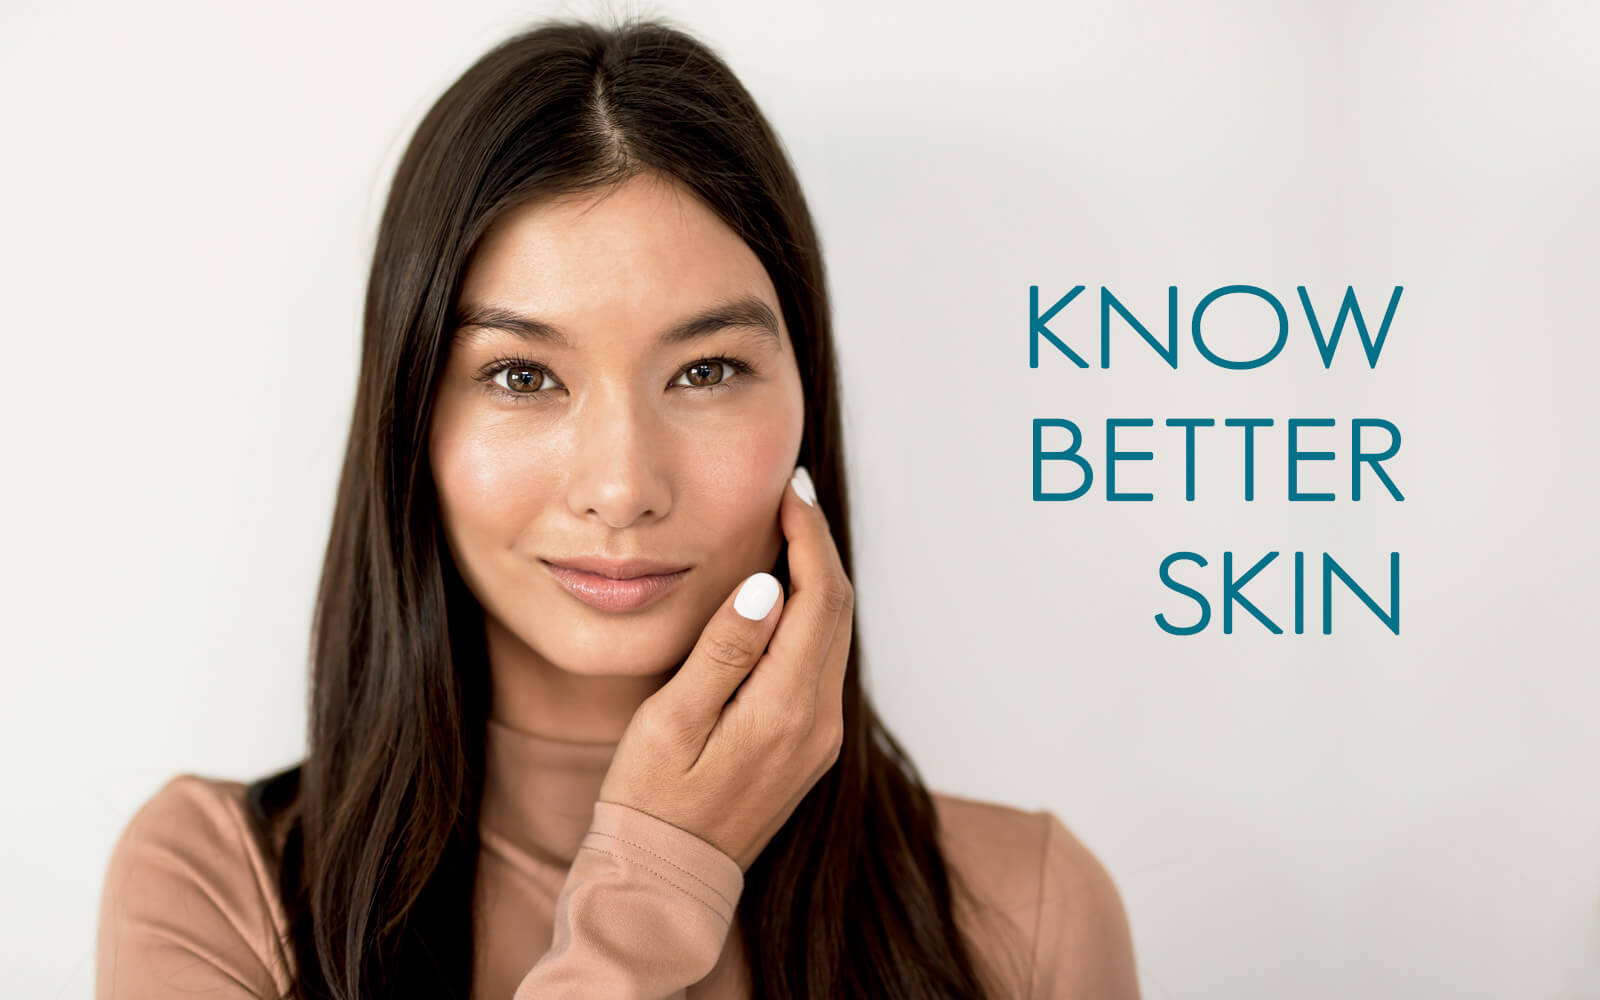 Know better skin